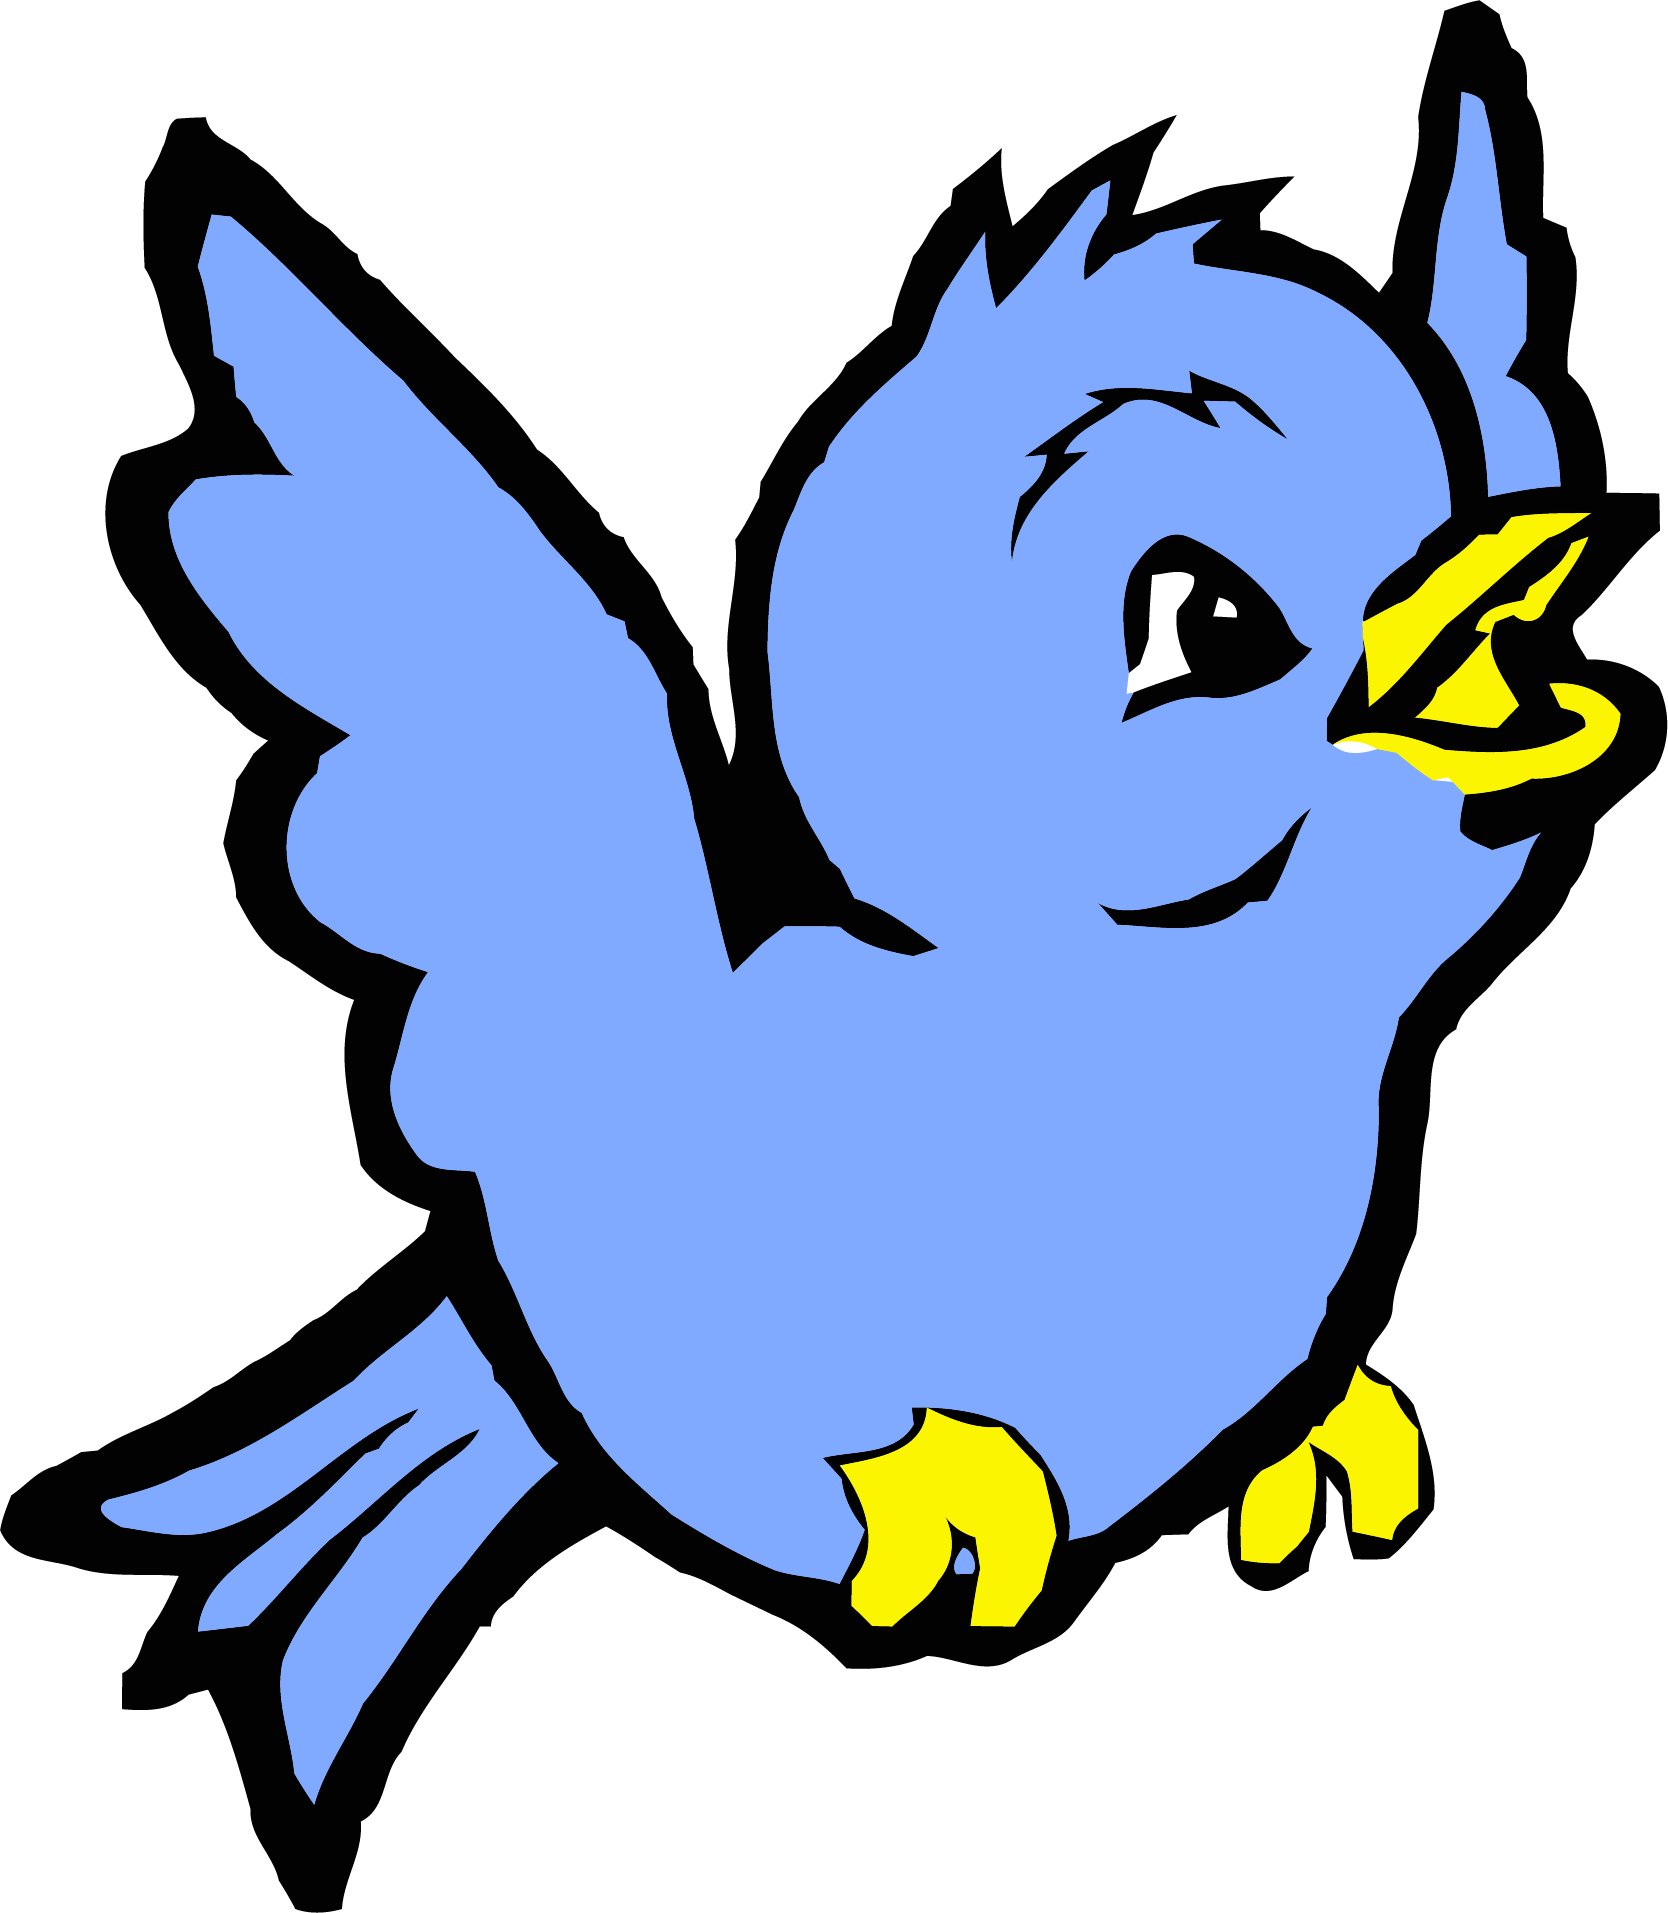 Cornflower blue bird cartoon. Anvil clipart pixel